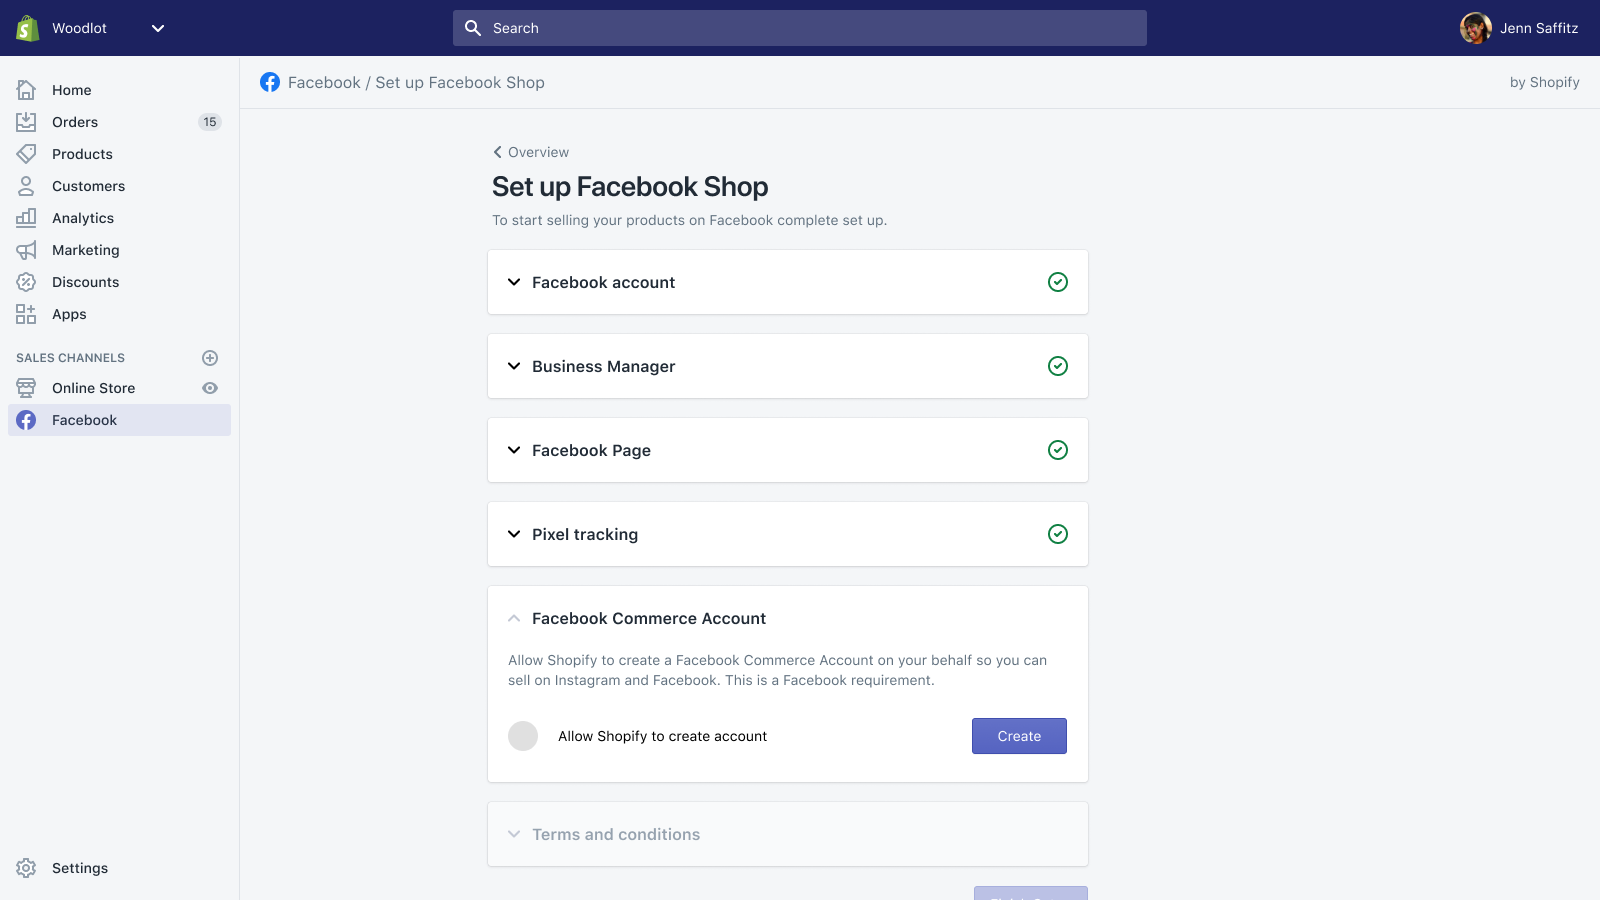 Connect your page to customize your Facebook Shop and pixel